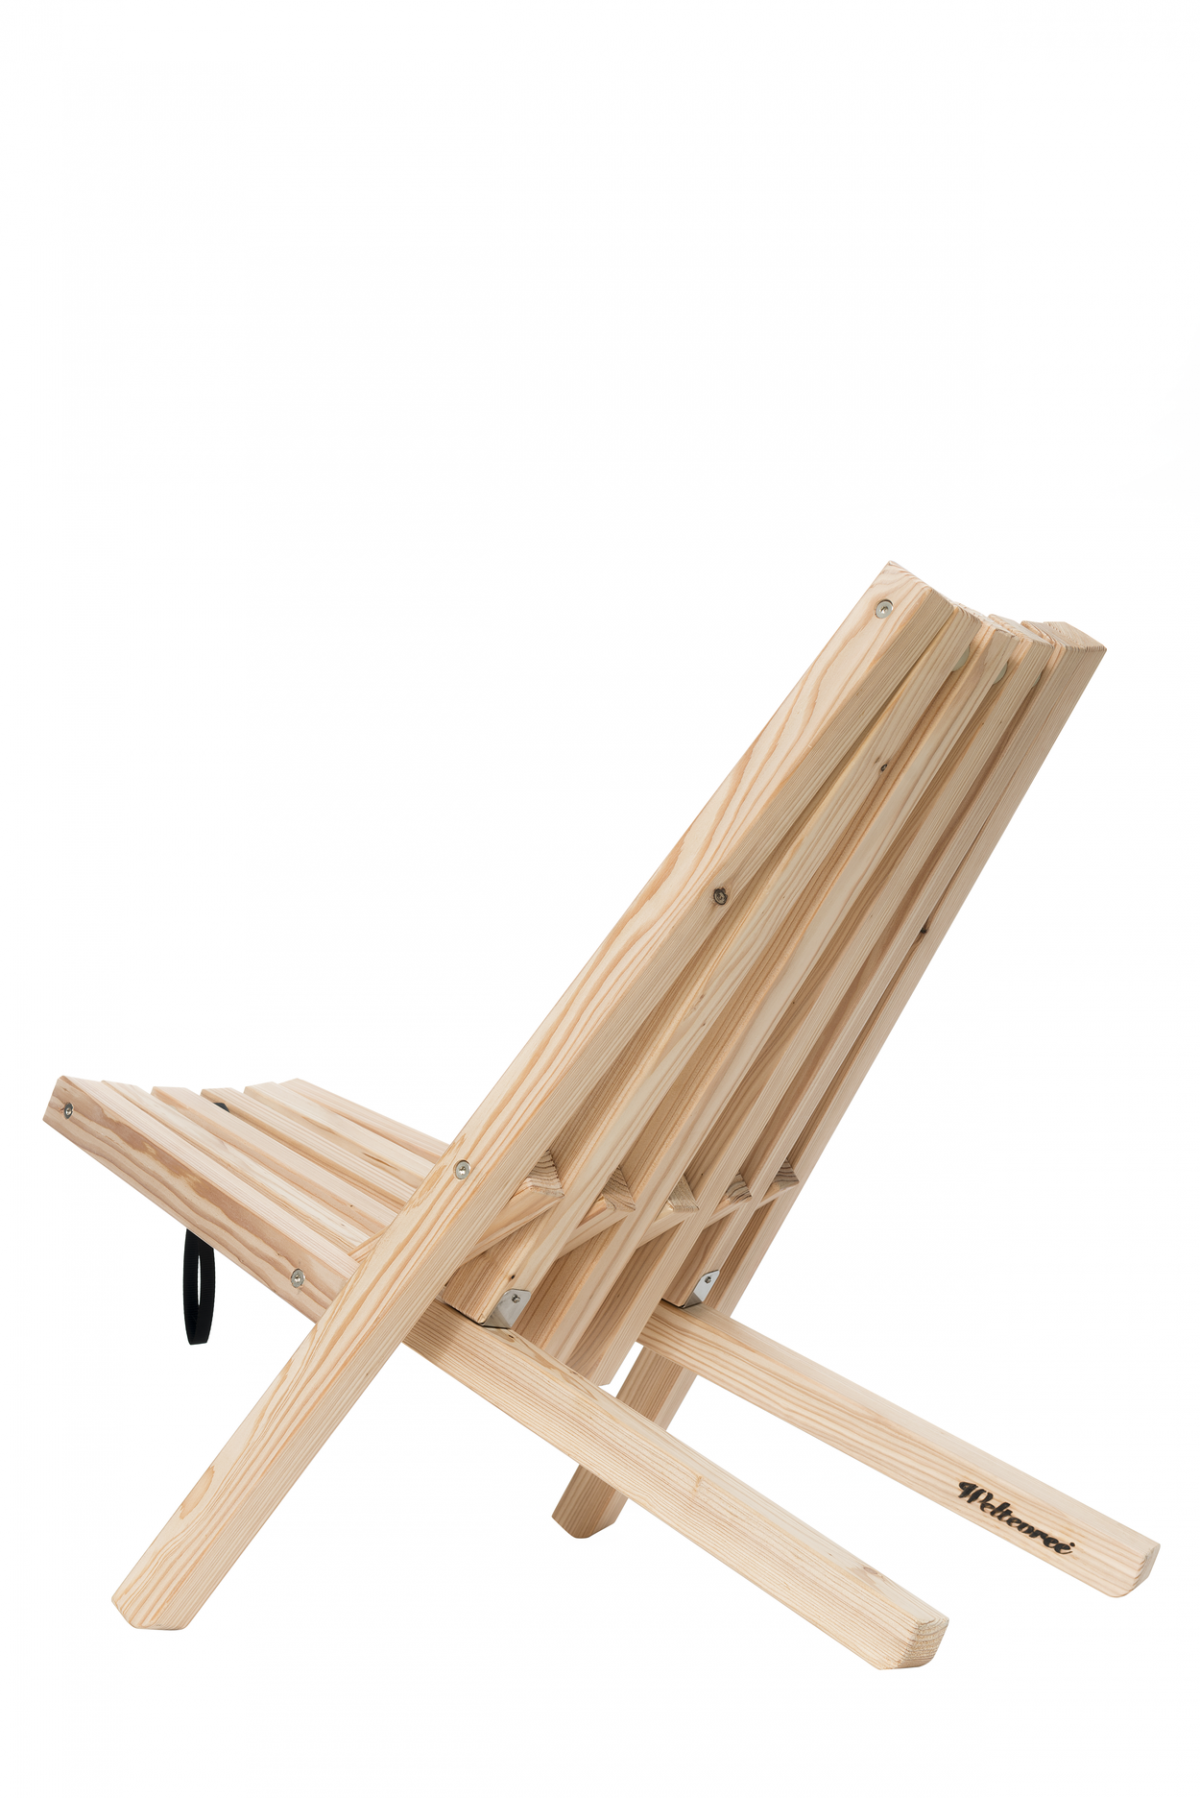 Weltevree Fieldchair Larch Stoel Lariks Dutchdesign Outdoor Lus